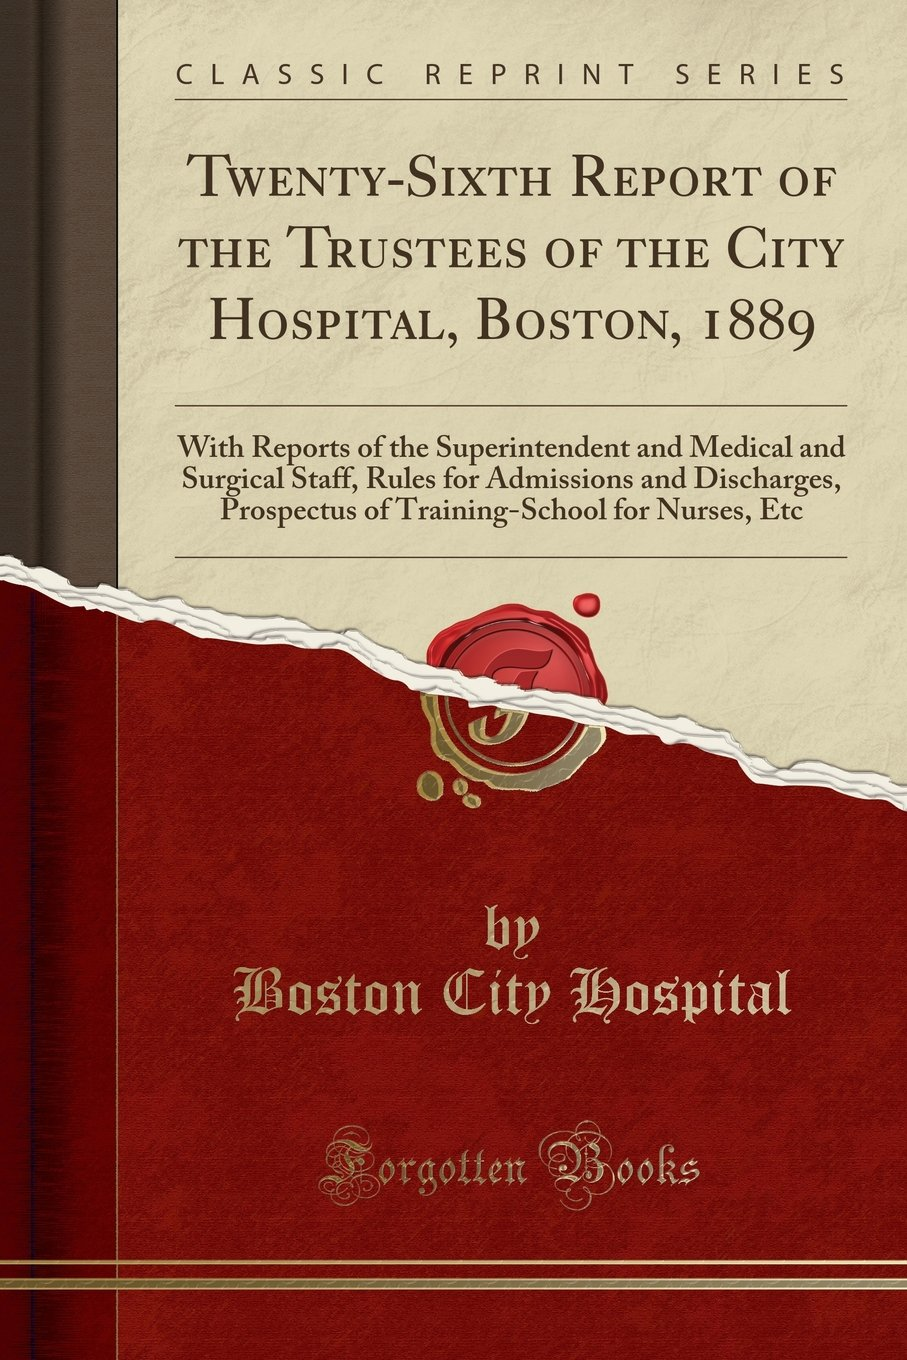 Read Online Twenty-Sixth Report of the Trustees of the City Hospital, Boston, 1889: With Reports of the Superintendent and Medical and Surgical Staff, Rules for ... for Nurses, Etc (Classic Reprint) ebook